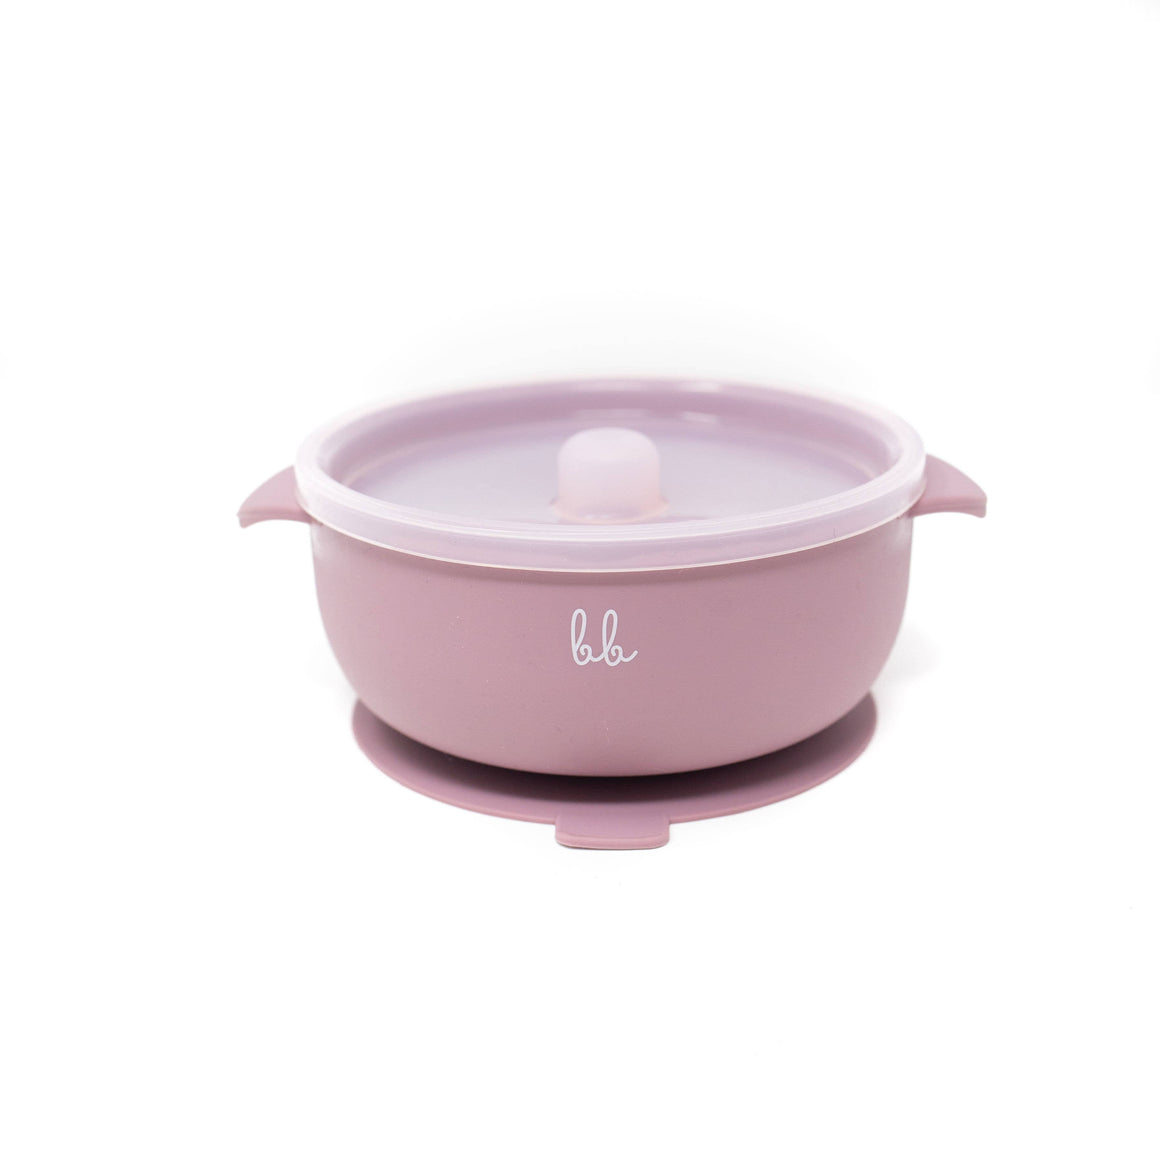 Baby Bar & Co by Three Hearts | Silicone Suction Bowl with Lid | Mauve